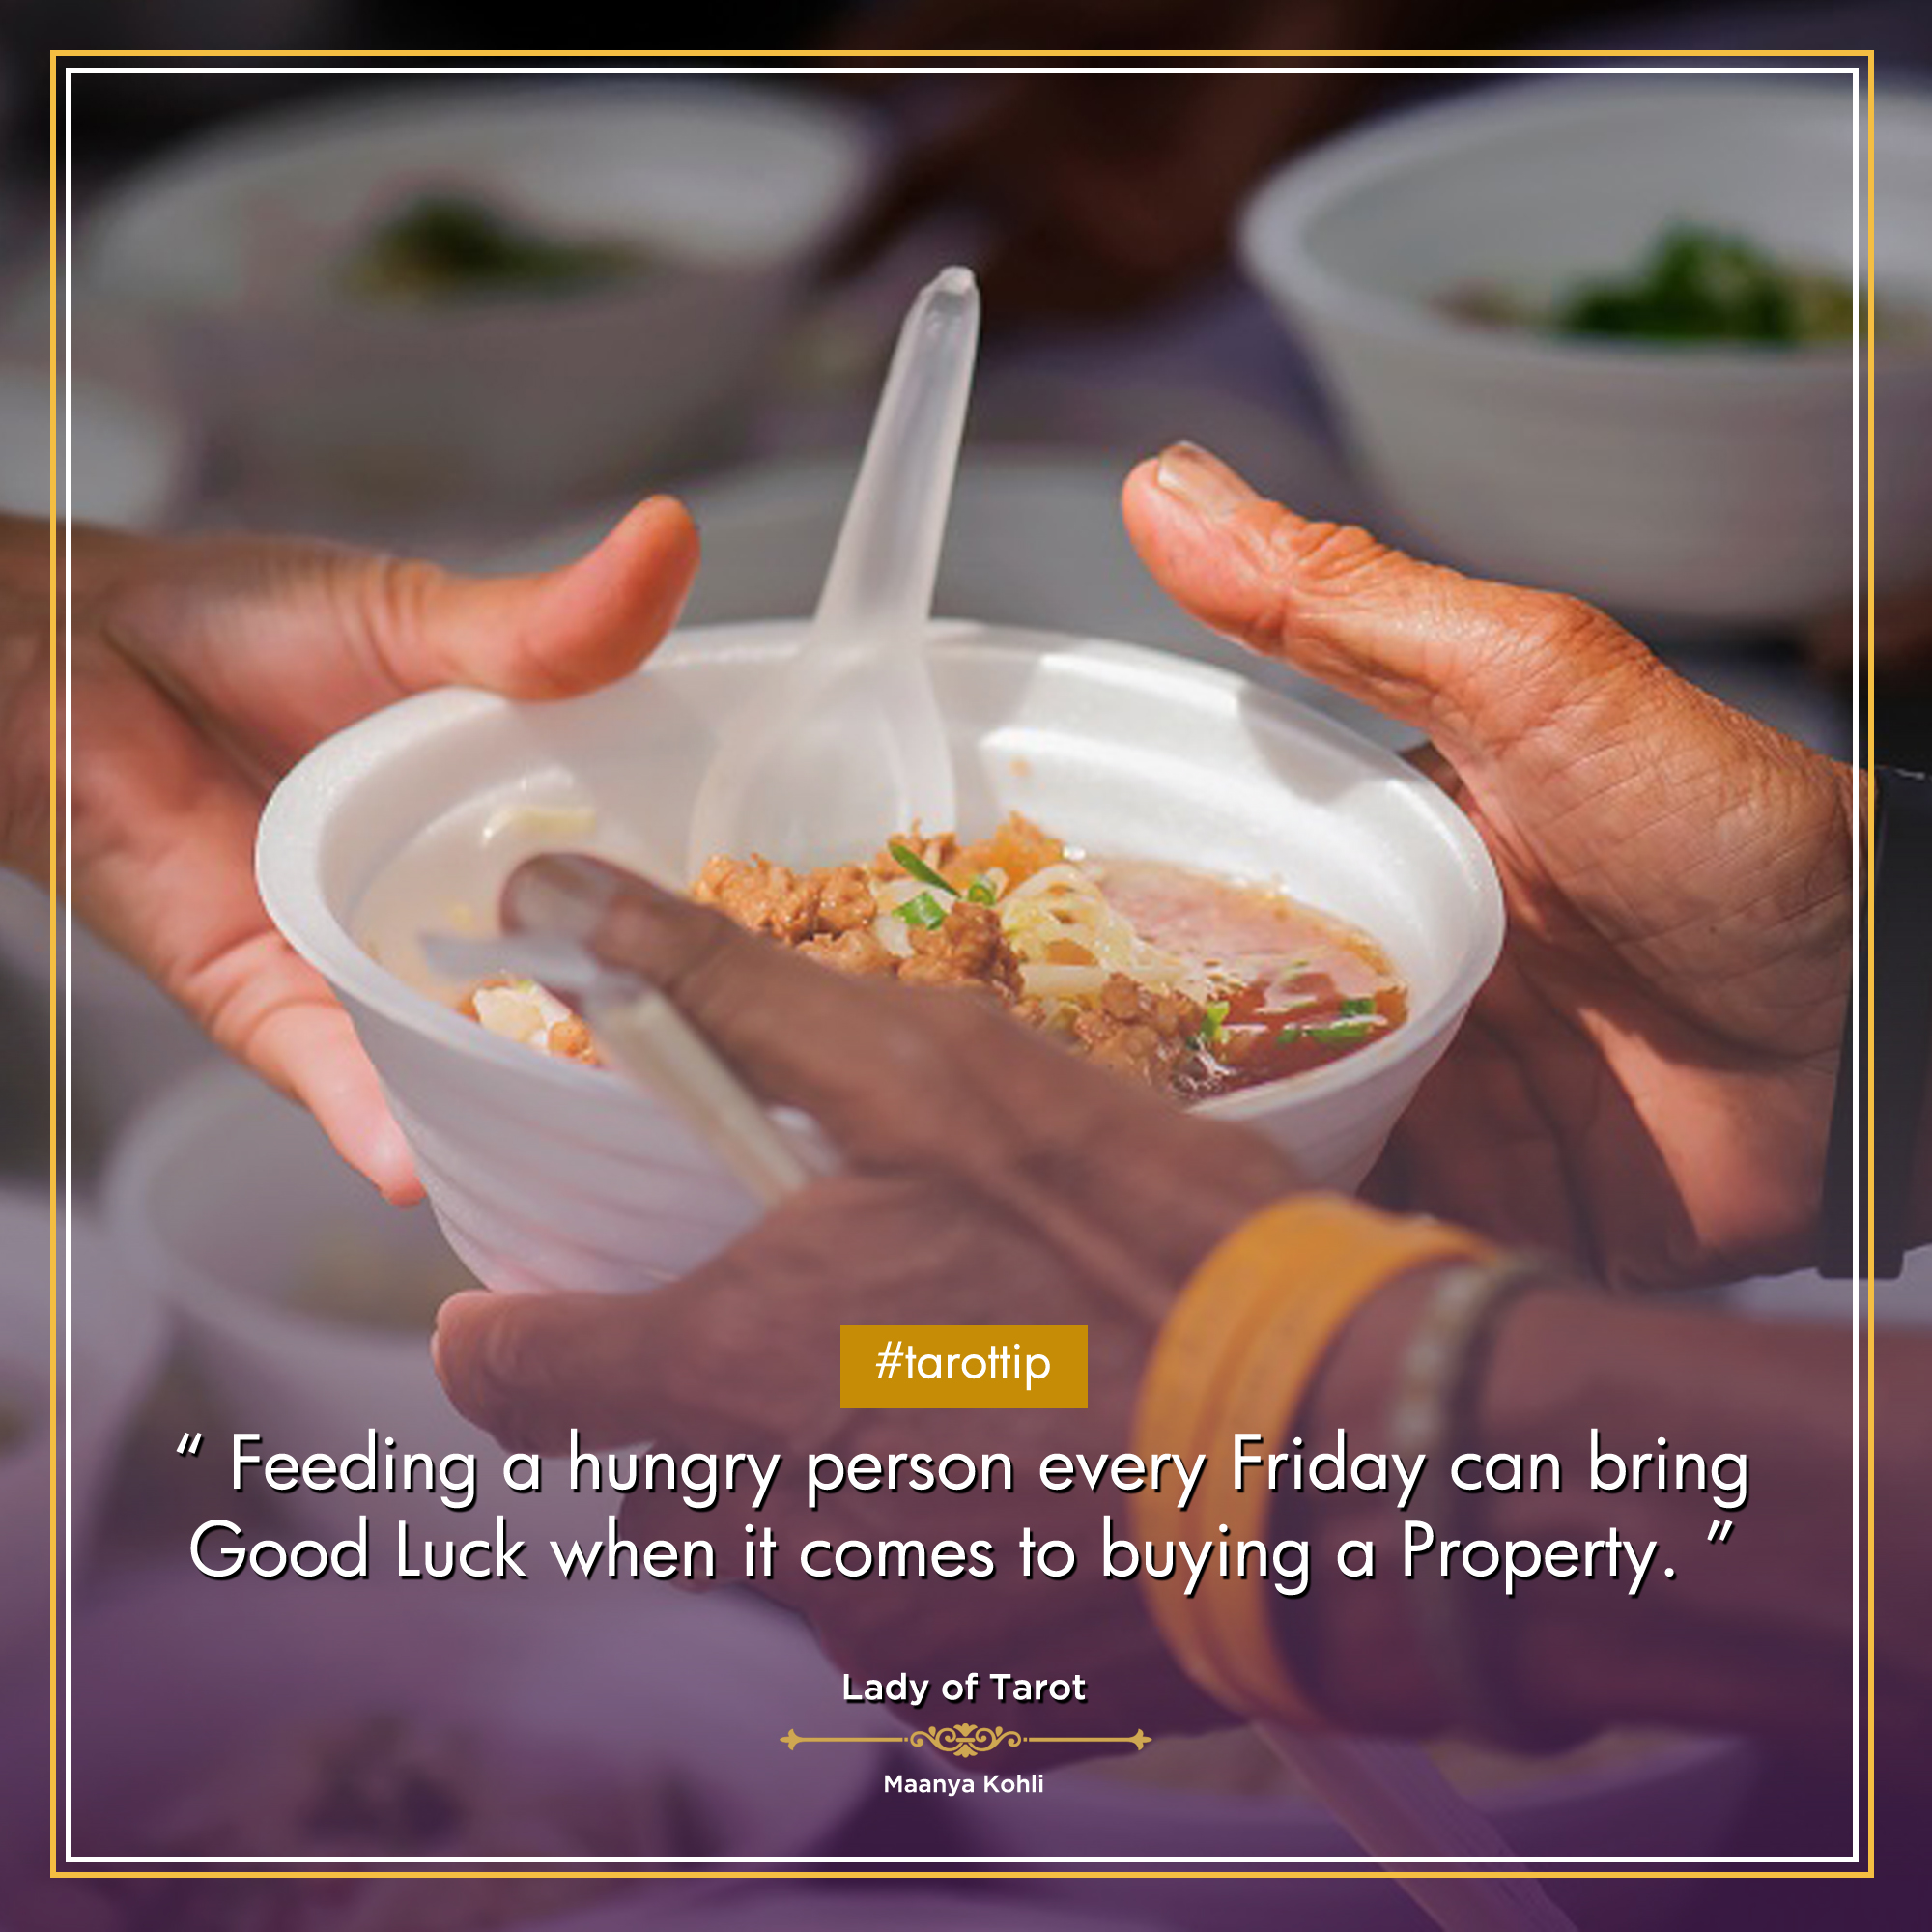 Tarot Tip for buying Property: Feeding a hungry person every Friday can bring good luck when it comes to buying a property.